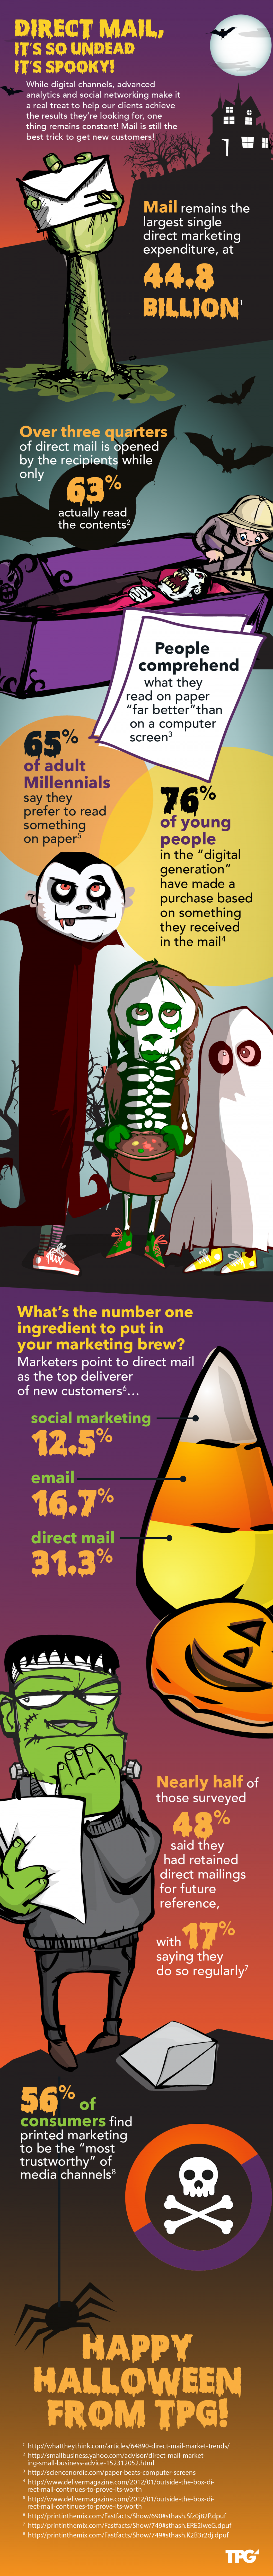 Direct Mail, It's So Undead It's Spooky! Infographic